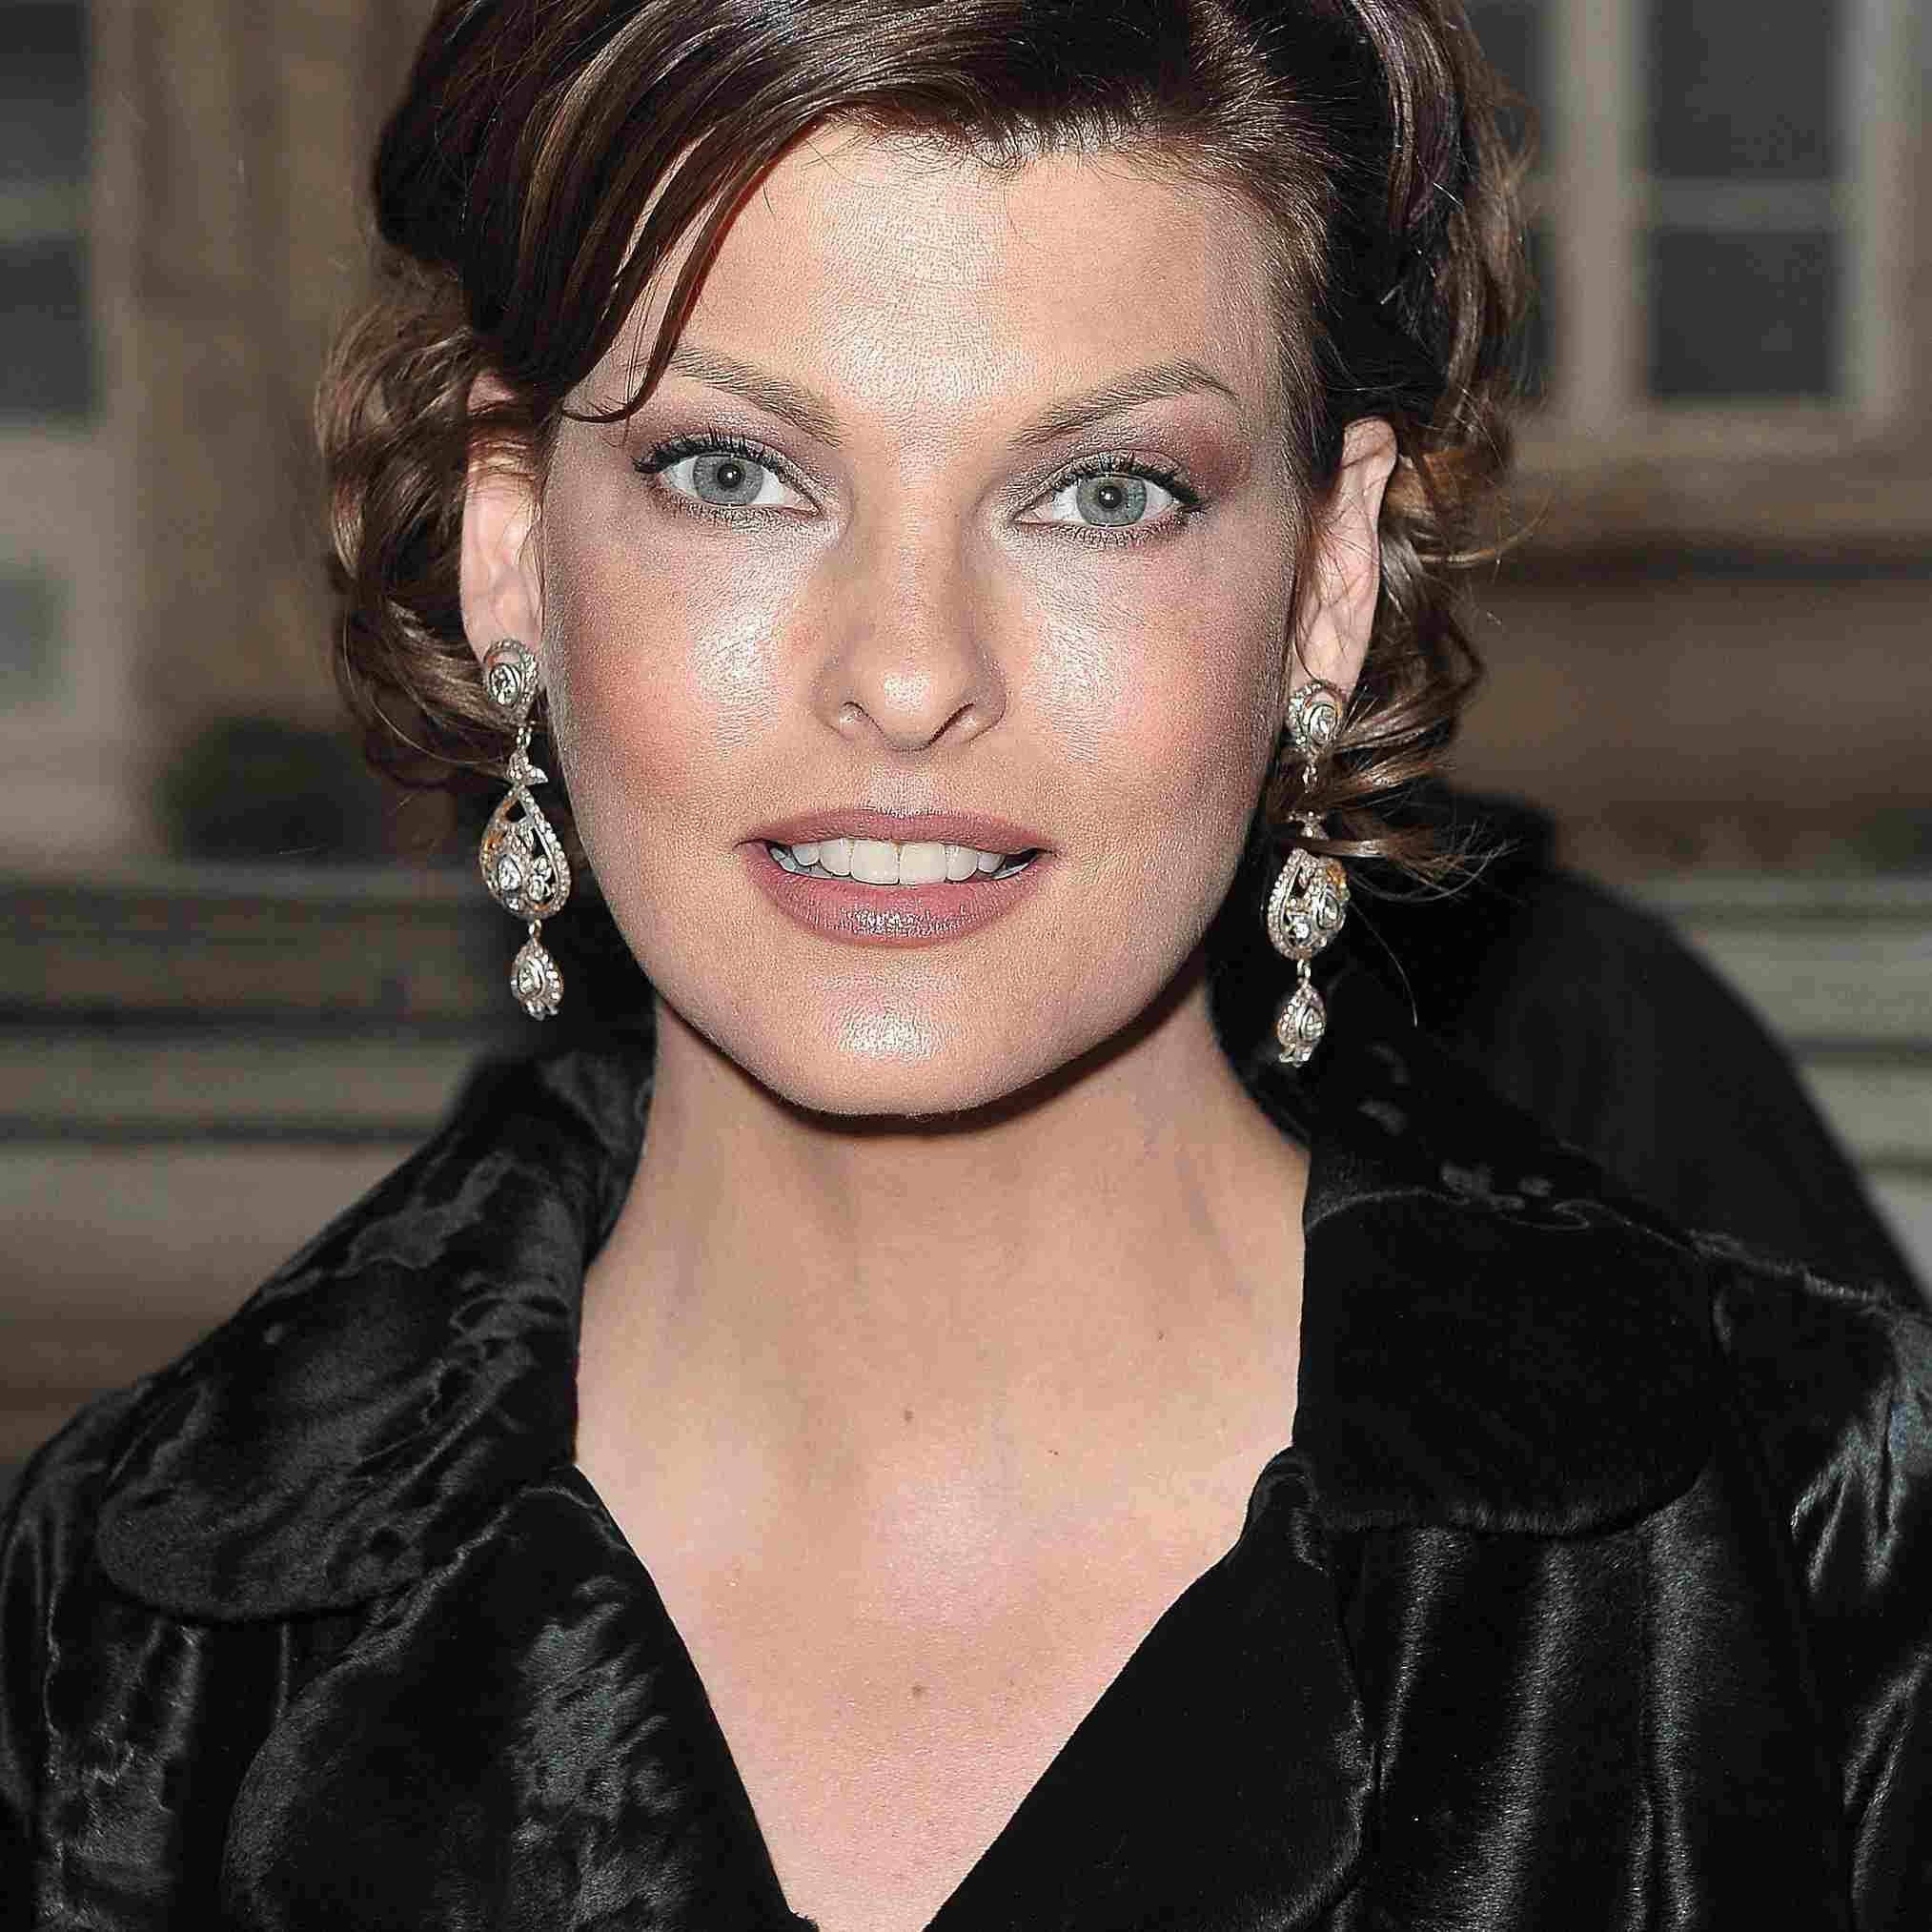 Model Linda Evangelista attends Alexis Mabille show during Paris Fashion Autumn/Winter 2009 on January 26, 2009 in Paris, France.